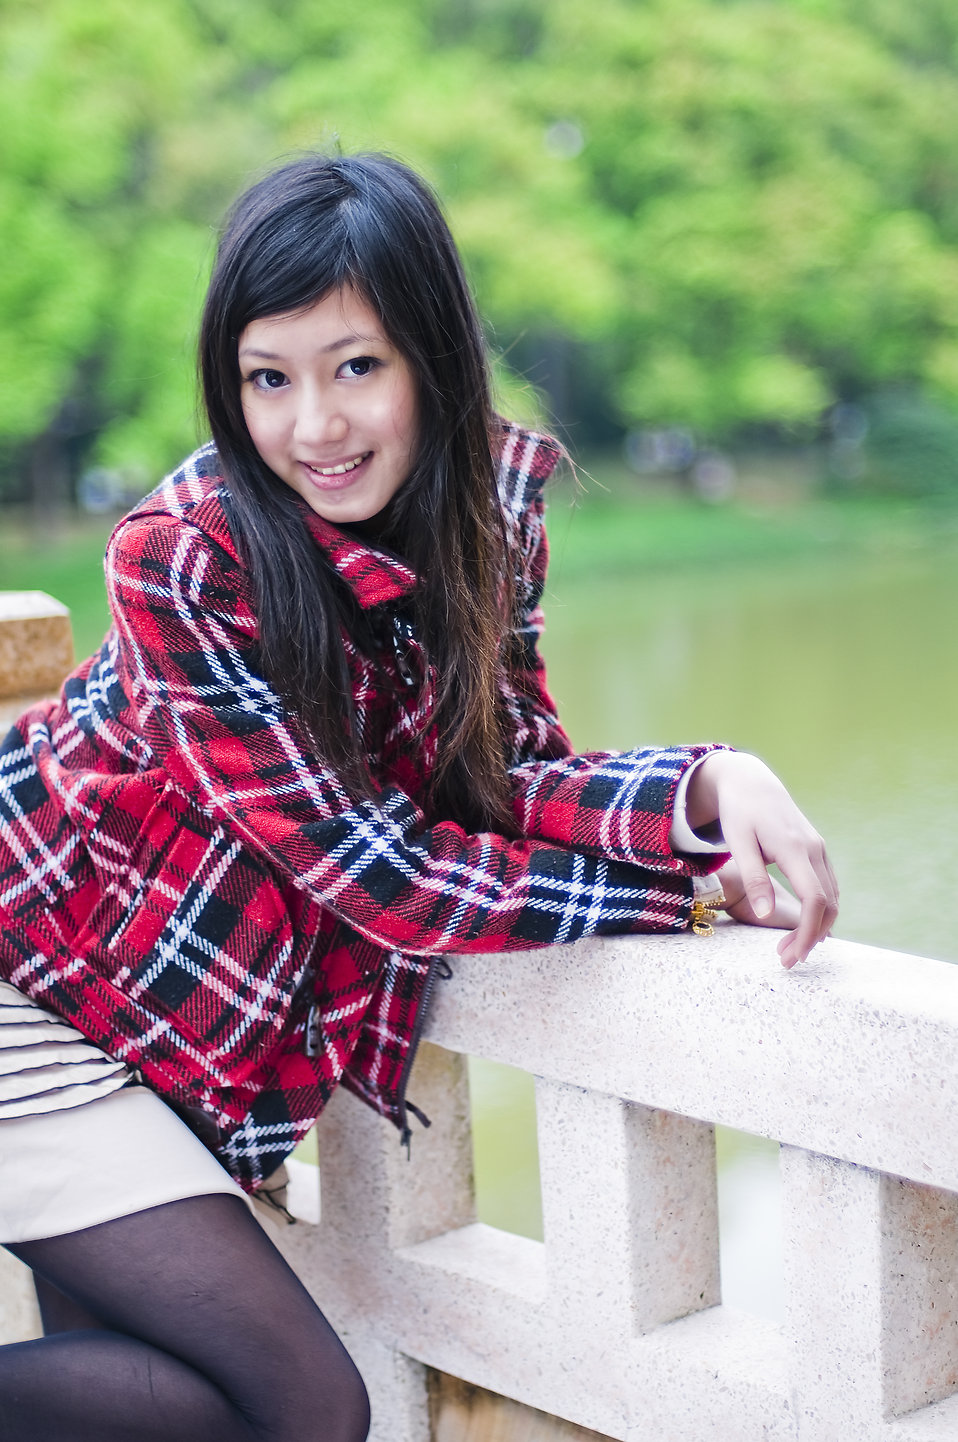 A beautiful Chinese girl posing outdoors : Free Stock Photo